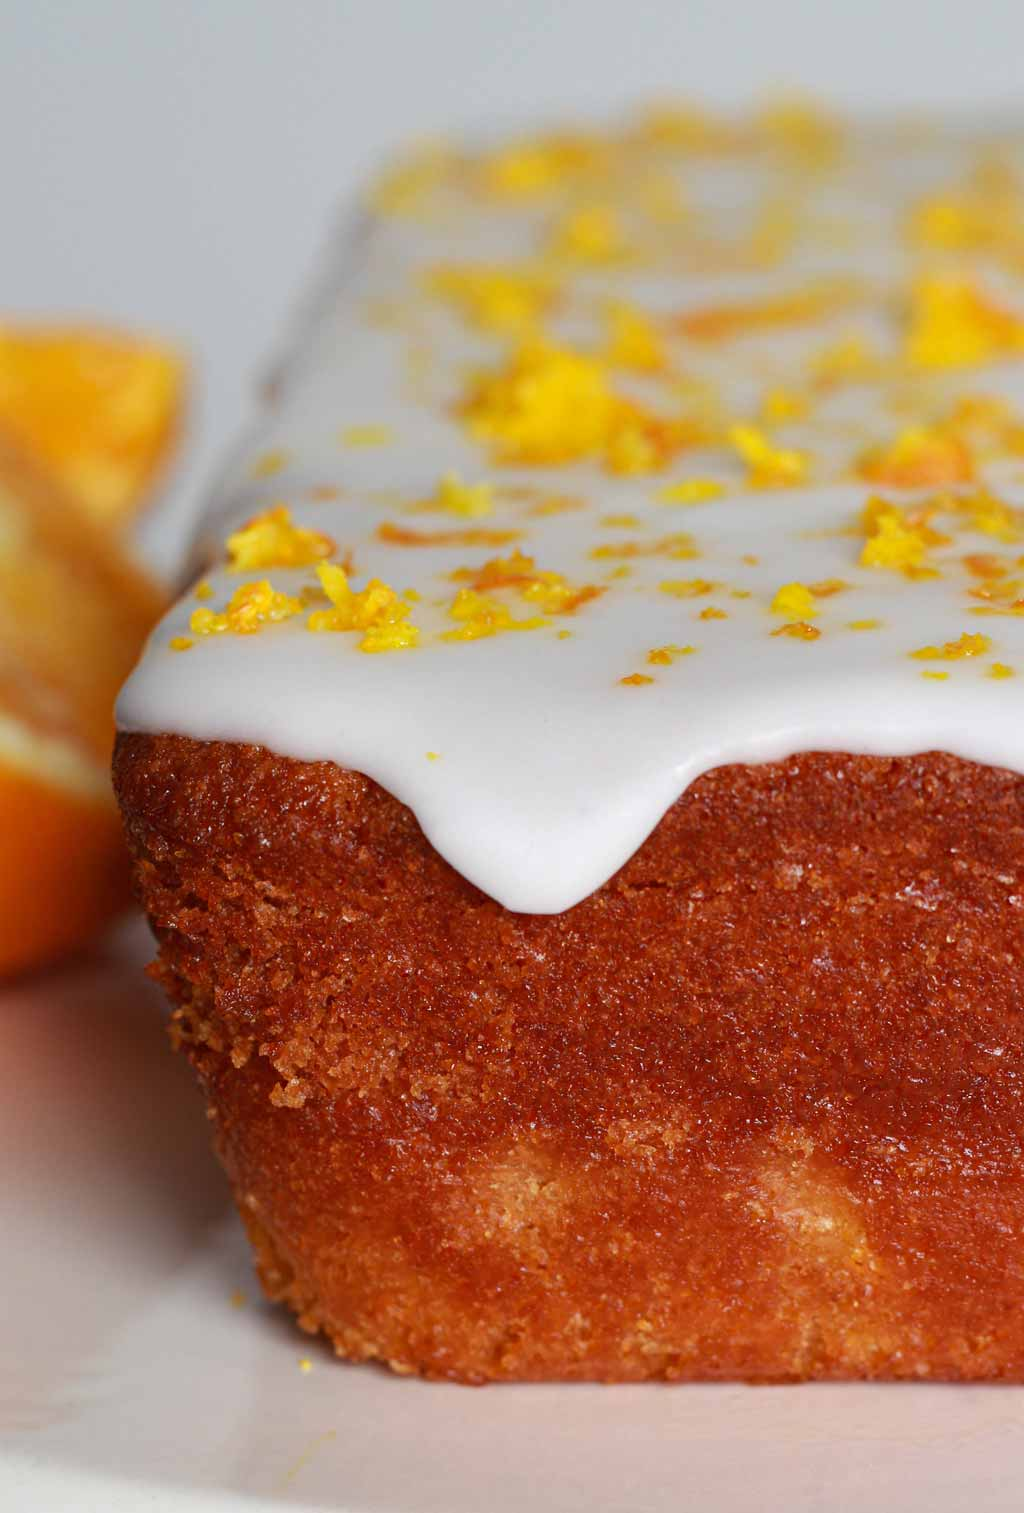 Close Up Of Orange Cake With Icing Dripping Down The Side